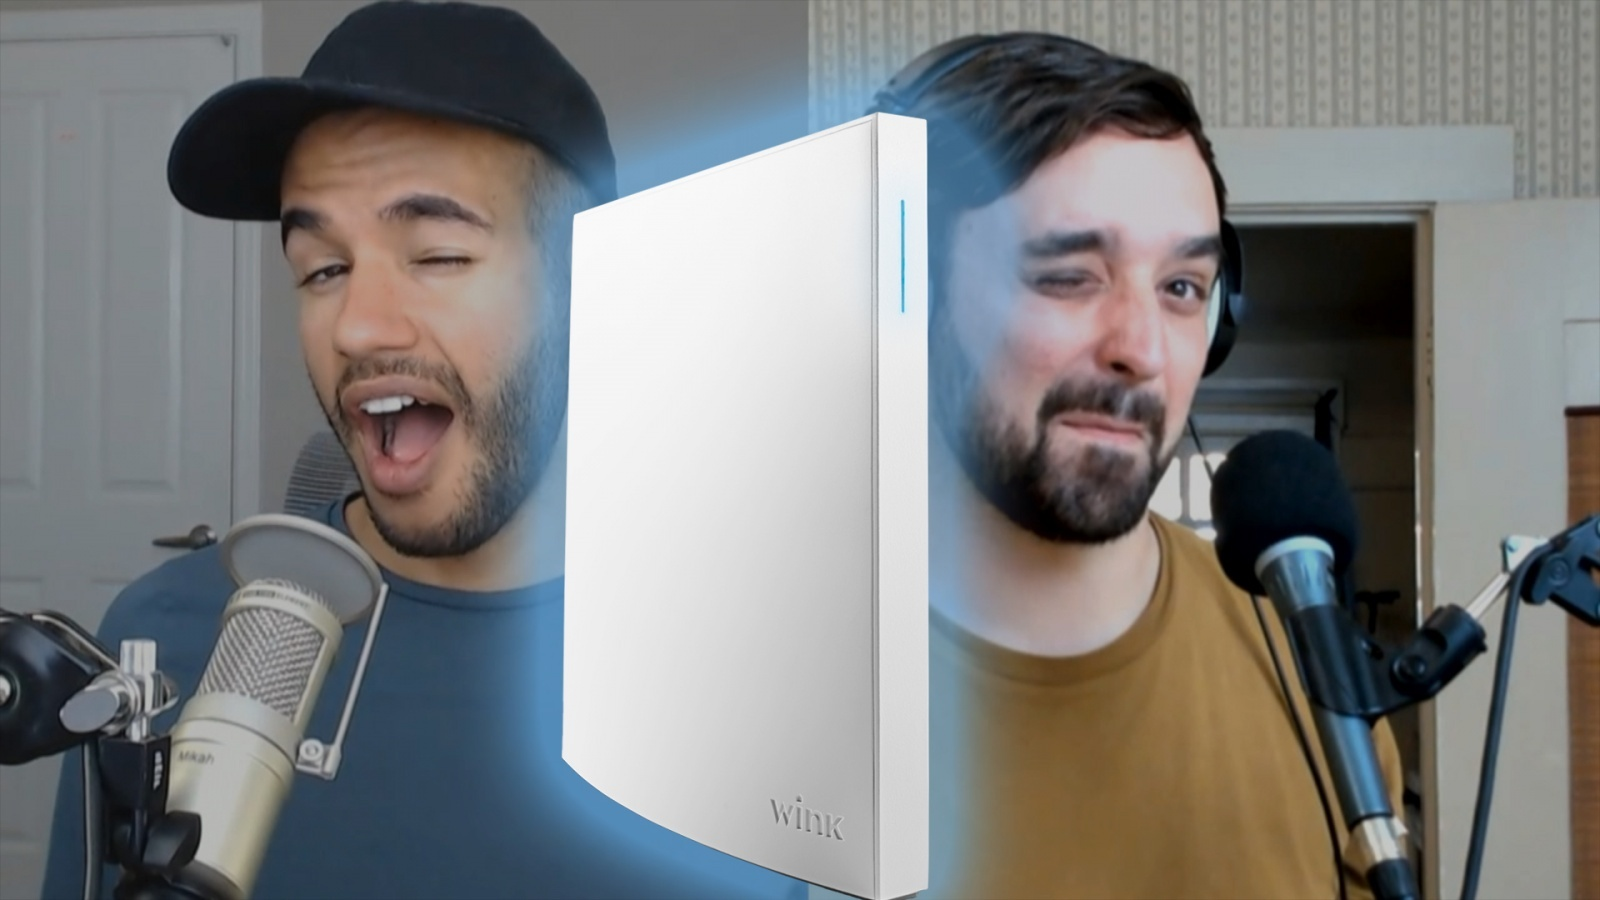 Seriously: Wink Officially Requires Subscription